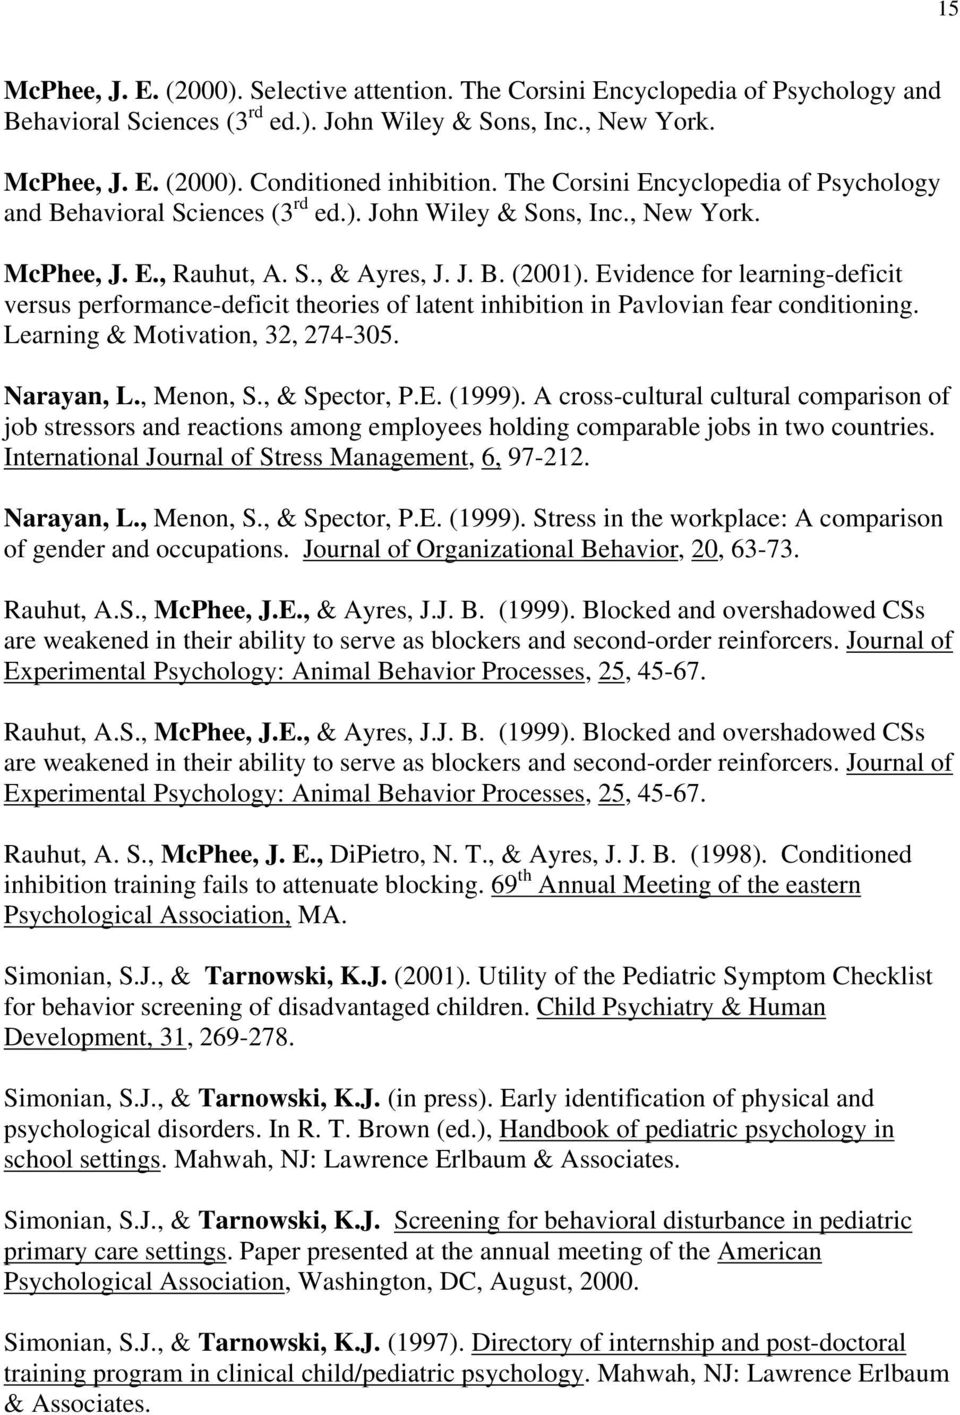 Evidence for learning-deficit versus performance-deficit theories of latent inhibition in Pavlovian fear conditioning. Learning & Motivation, 32, 274-305. Narayan, L., Menon, S., & Spector, P.E. (1999).